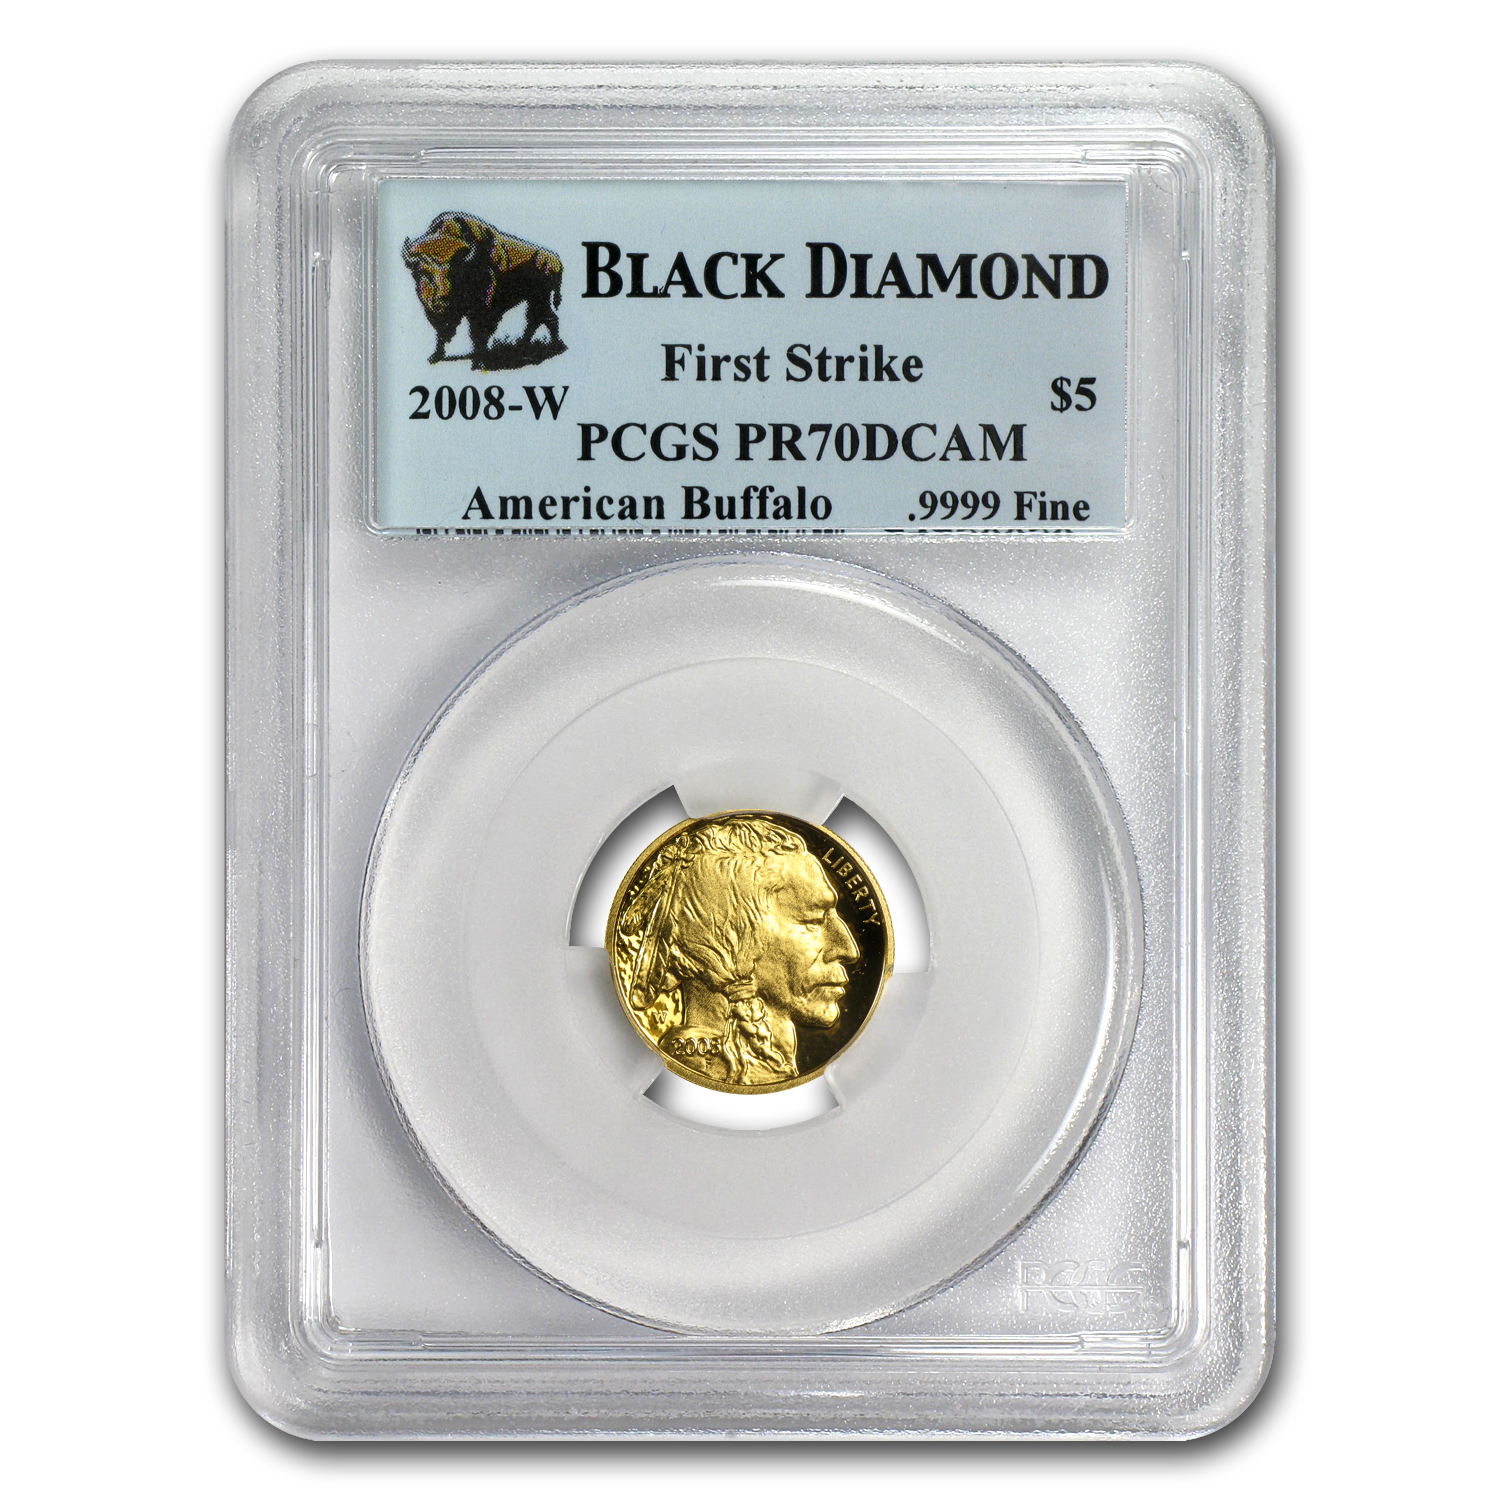 2008-W 1/10 oz Gold Buffalo PR-70 PCGS First Strike Black Diamond